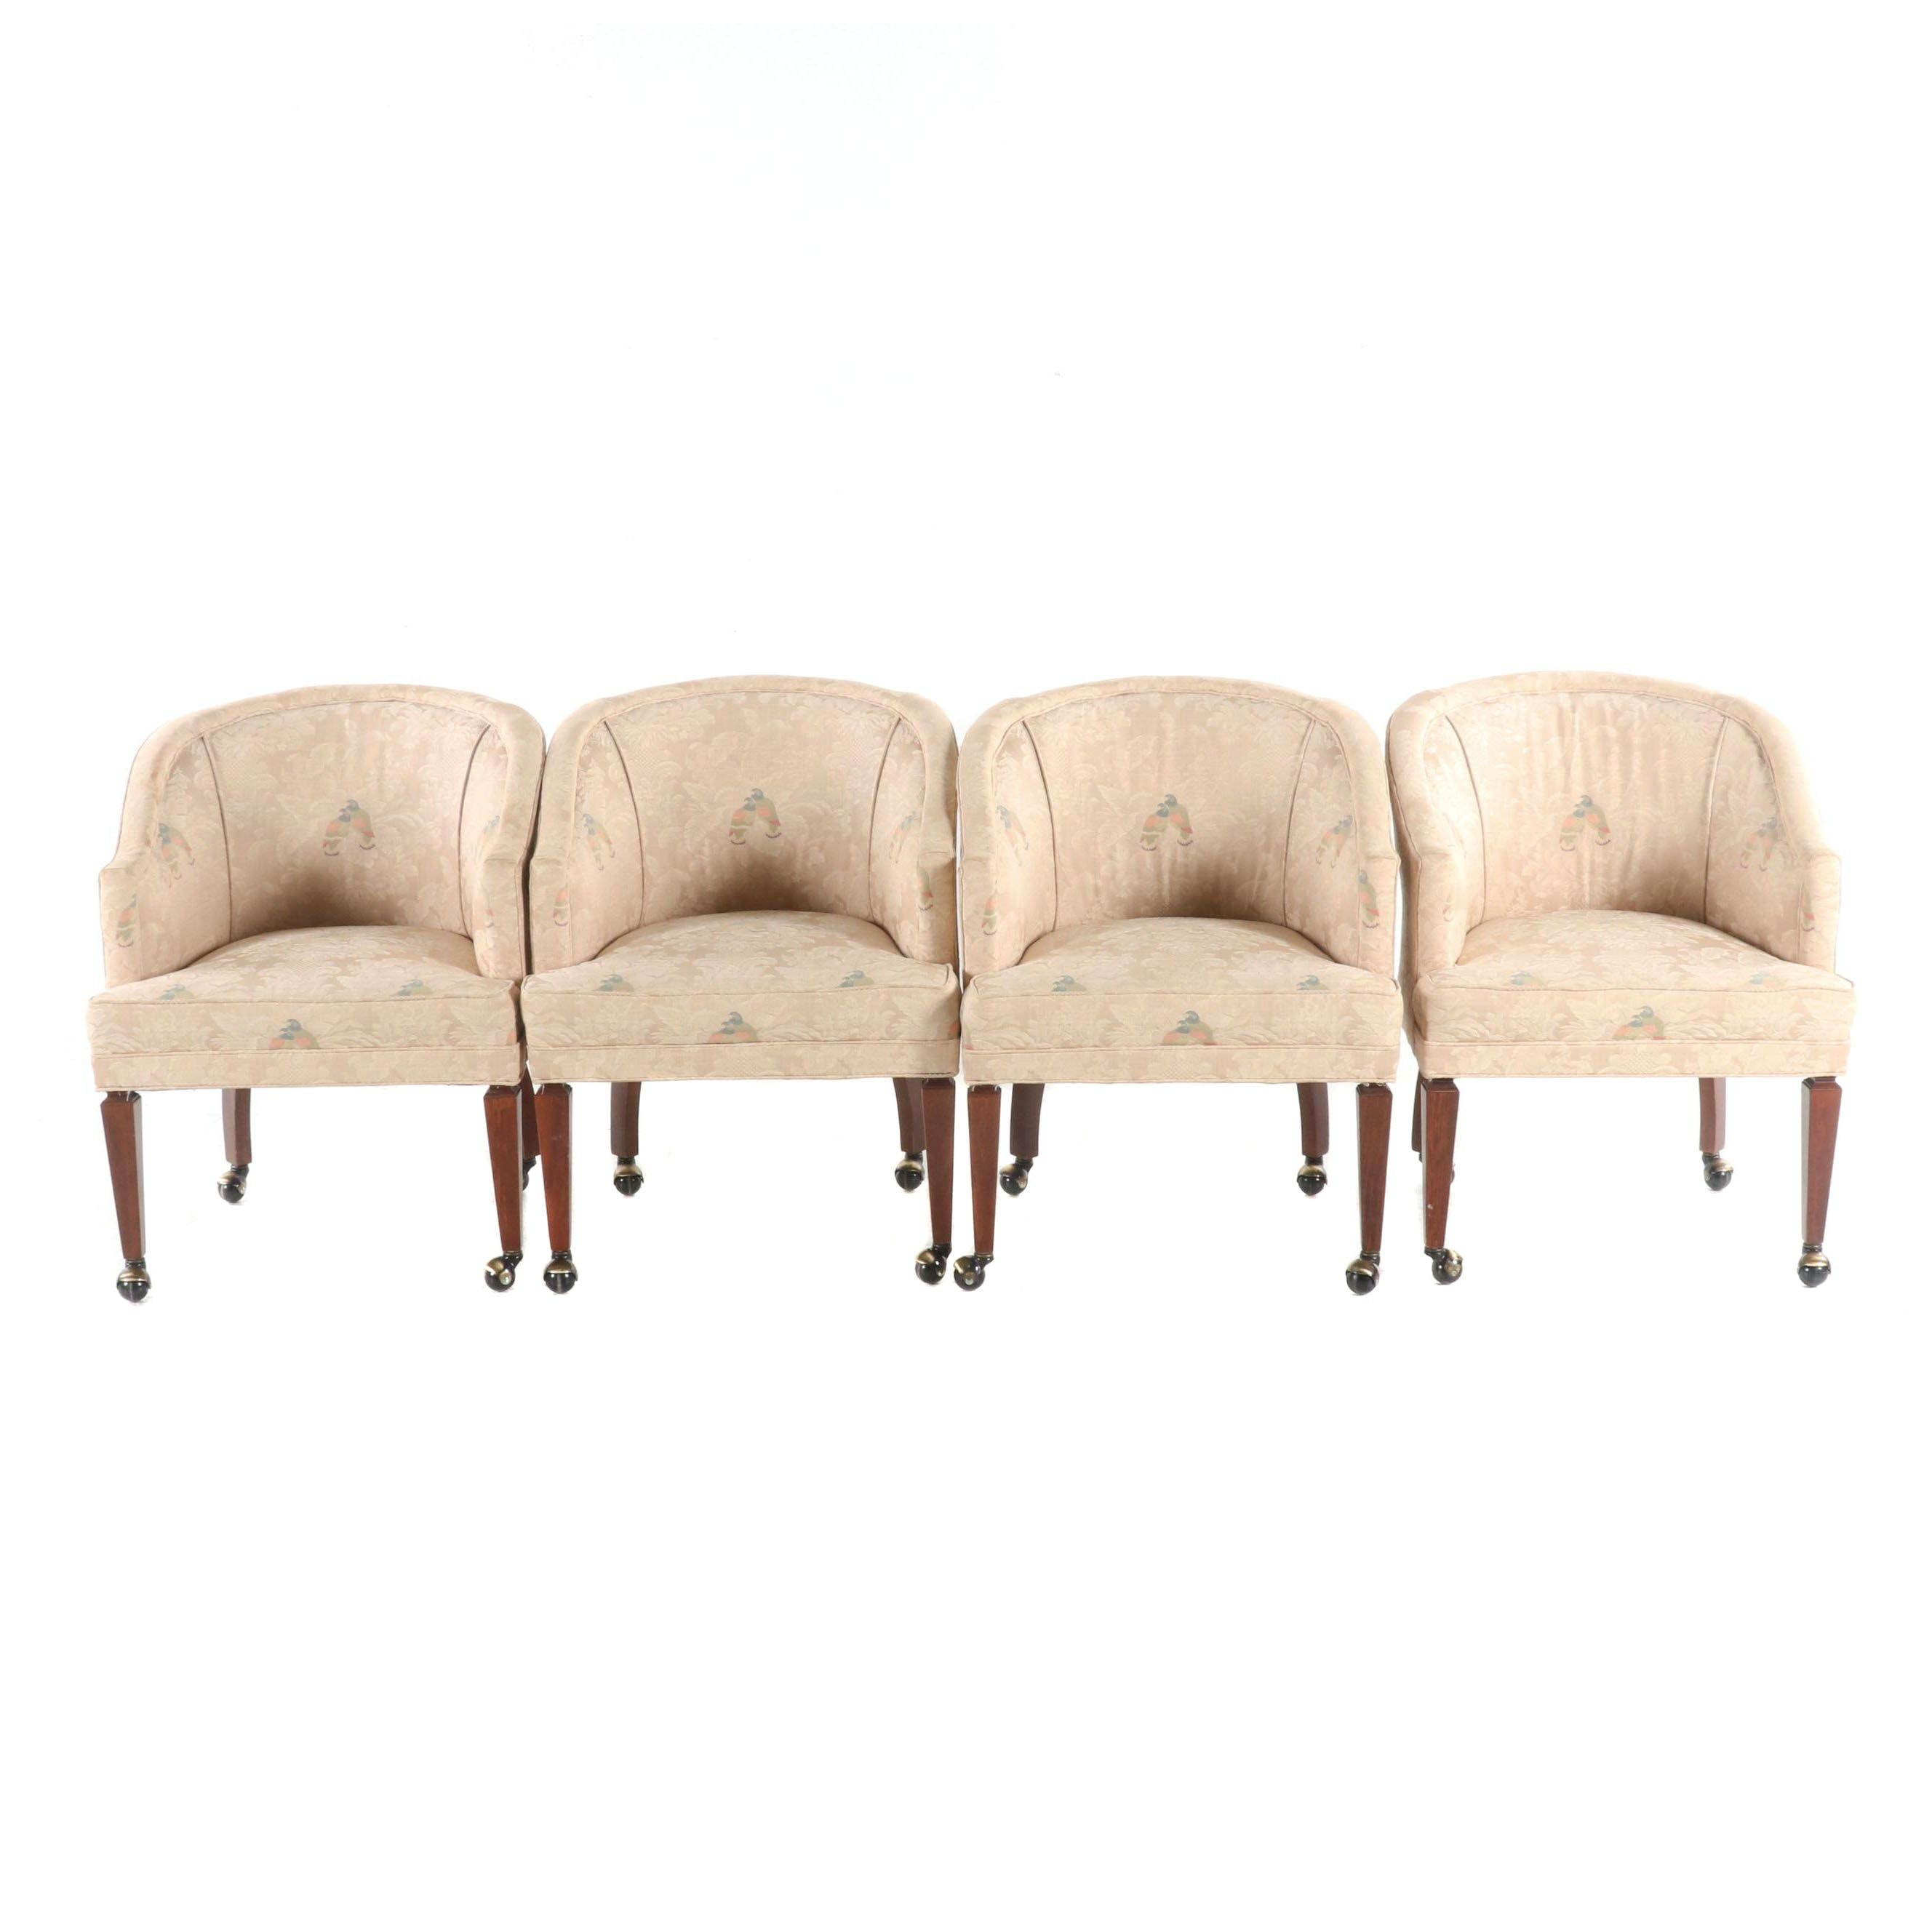 Set of Four Contemporary Upholstered Barrel Back Poker Table Chairs